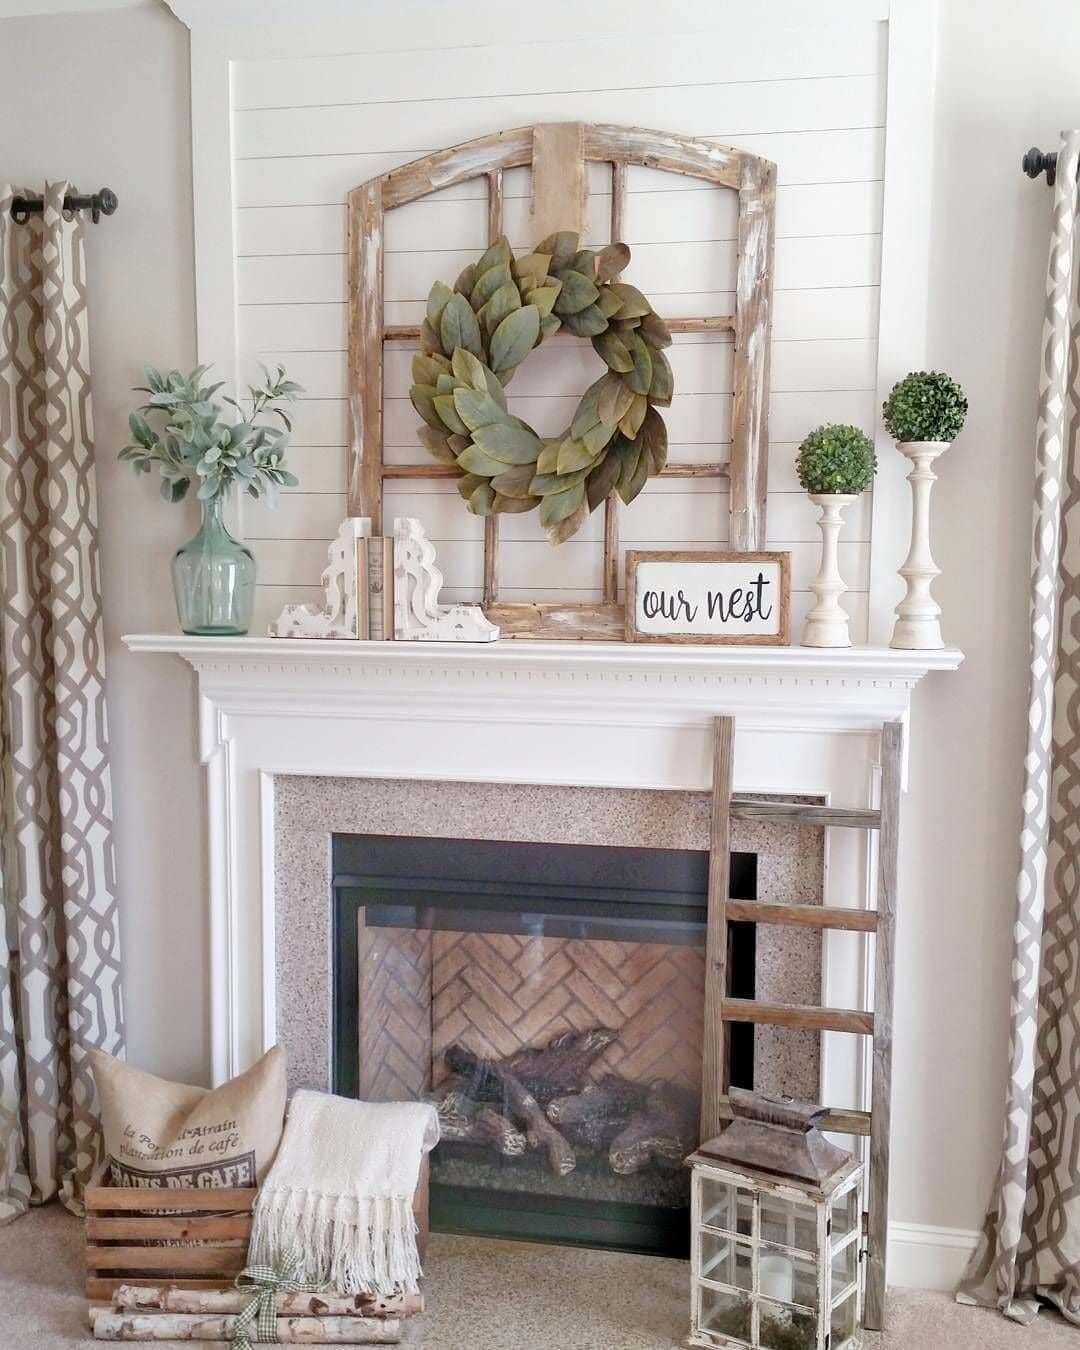 "A great flea market find, this rustic window frame makes for a great element in a modern farmhouse or rustic design. They simply leaned the window frame off the mantel and hung a small wreath of bay leaves from it. The simple ""Our Nest"" sign helps bring that warm cozy feeling to this rustic mantel space."